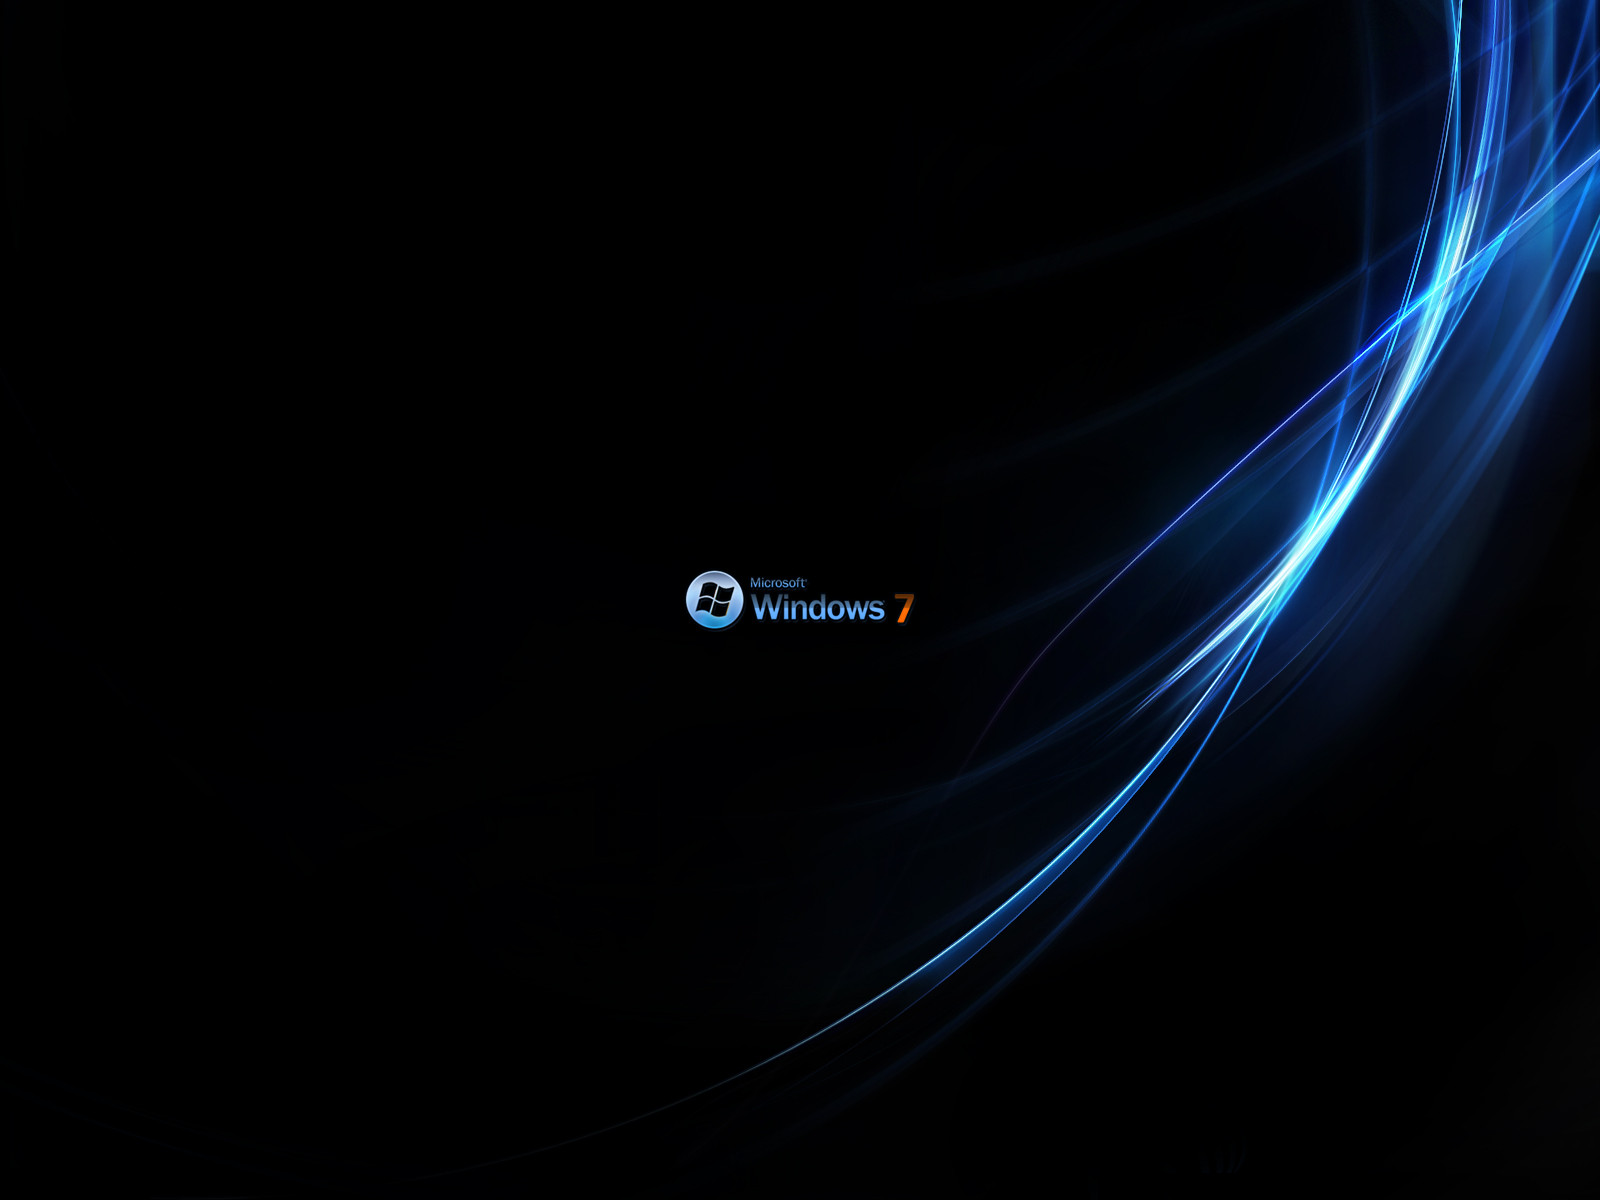 HD Wallpapers for Windows 7 1600x1200